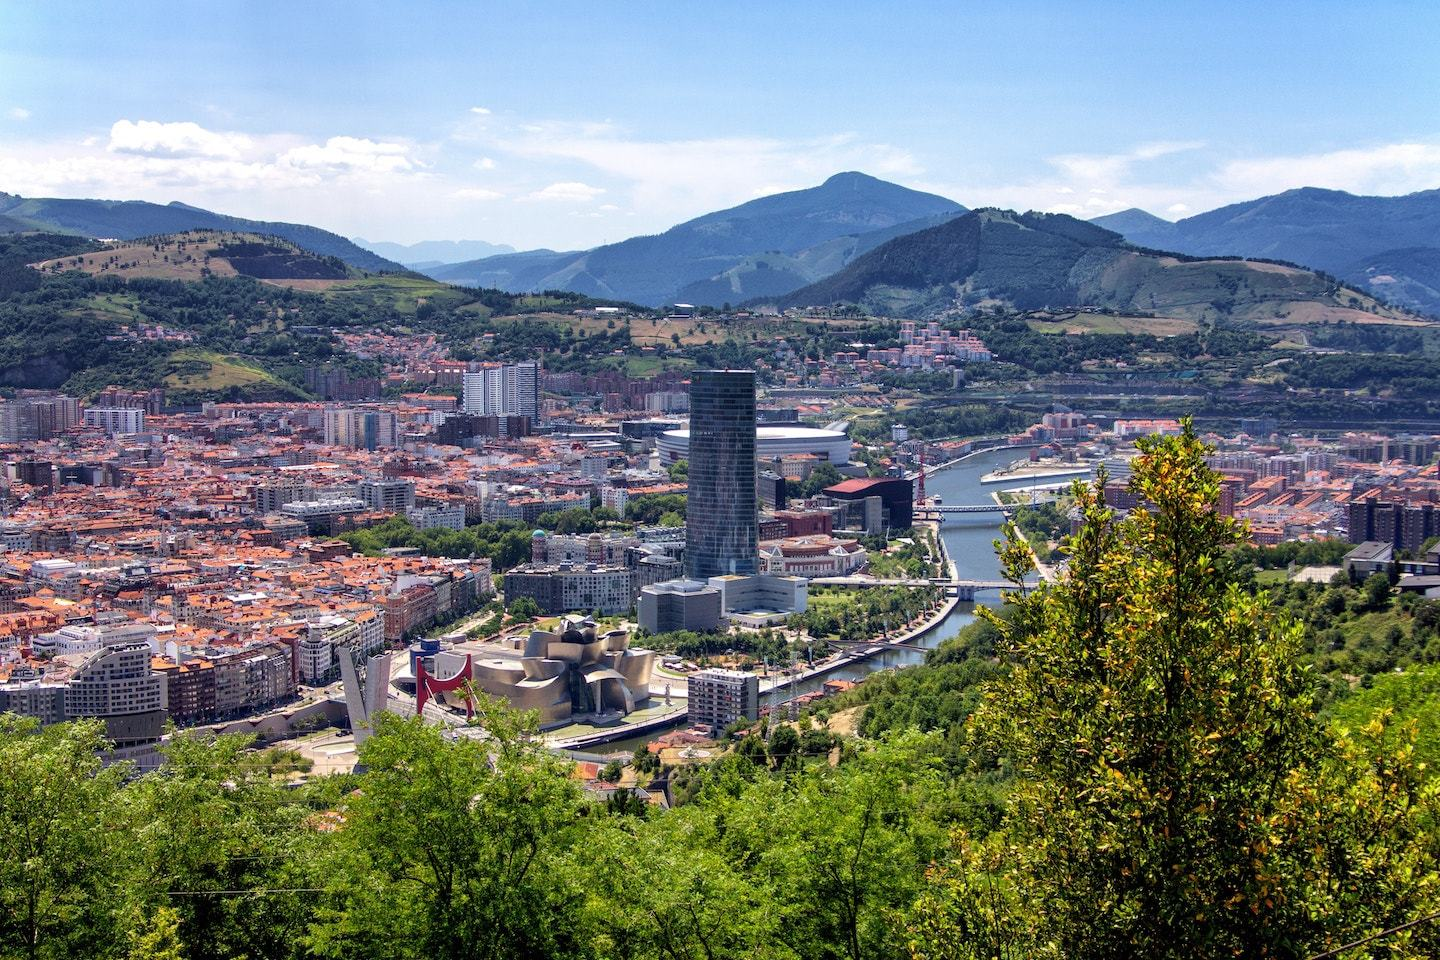 Aerial view of bilbao spain with buildings, trees and mountains